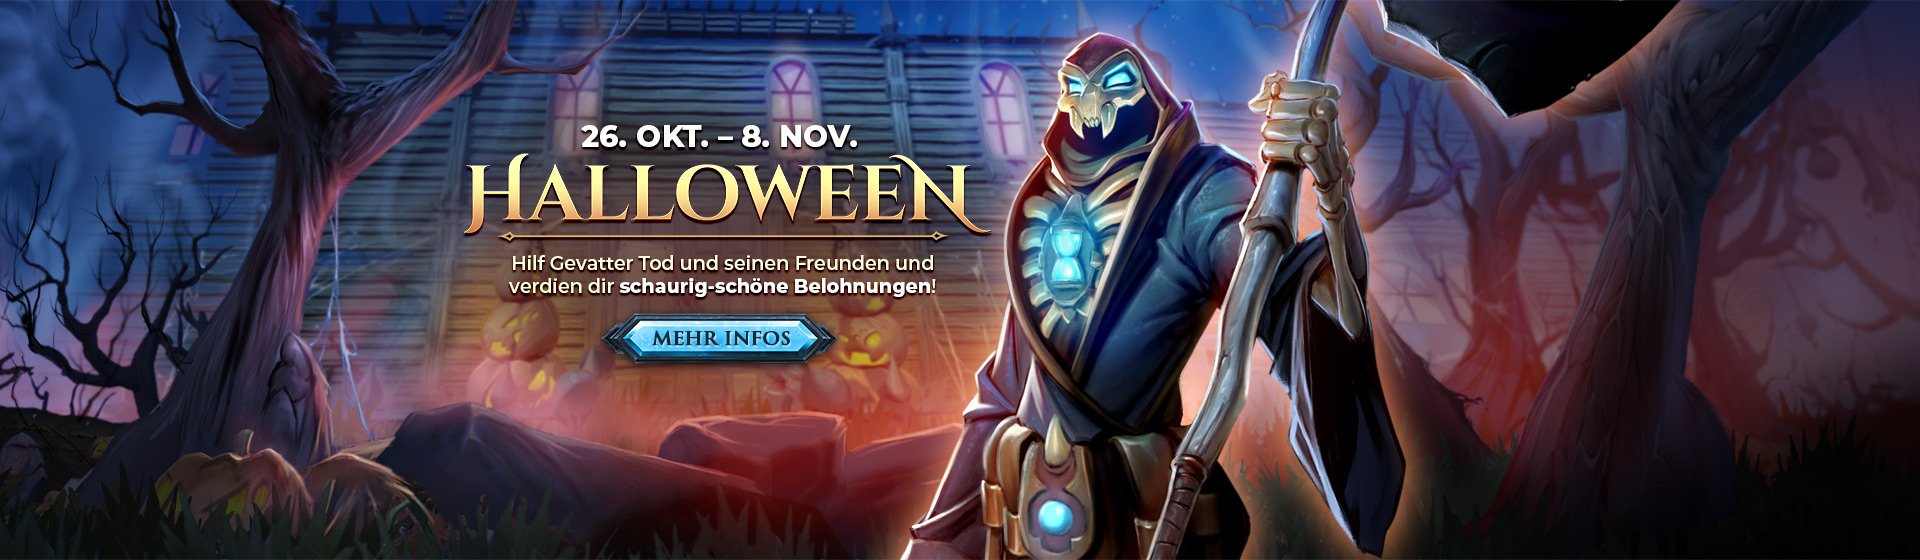 RS3-Rotator-Halloween-DE